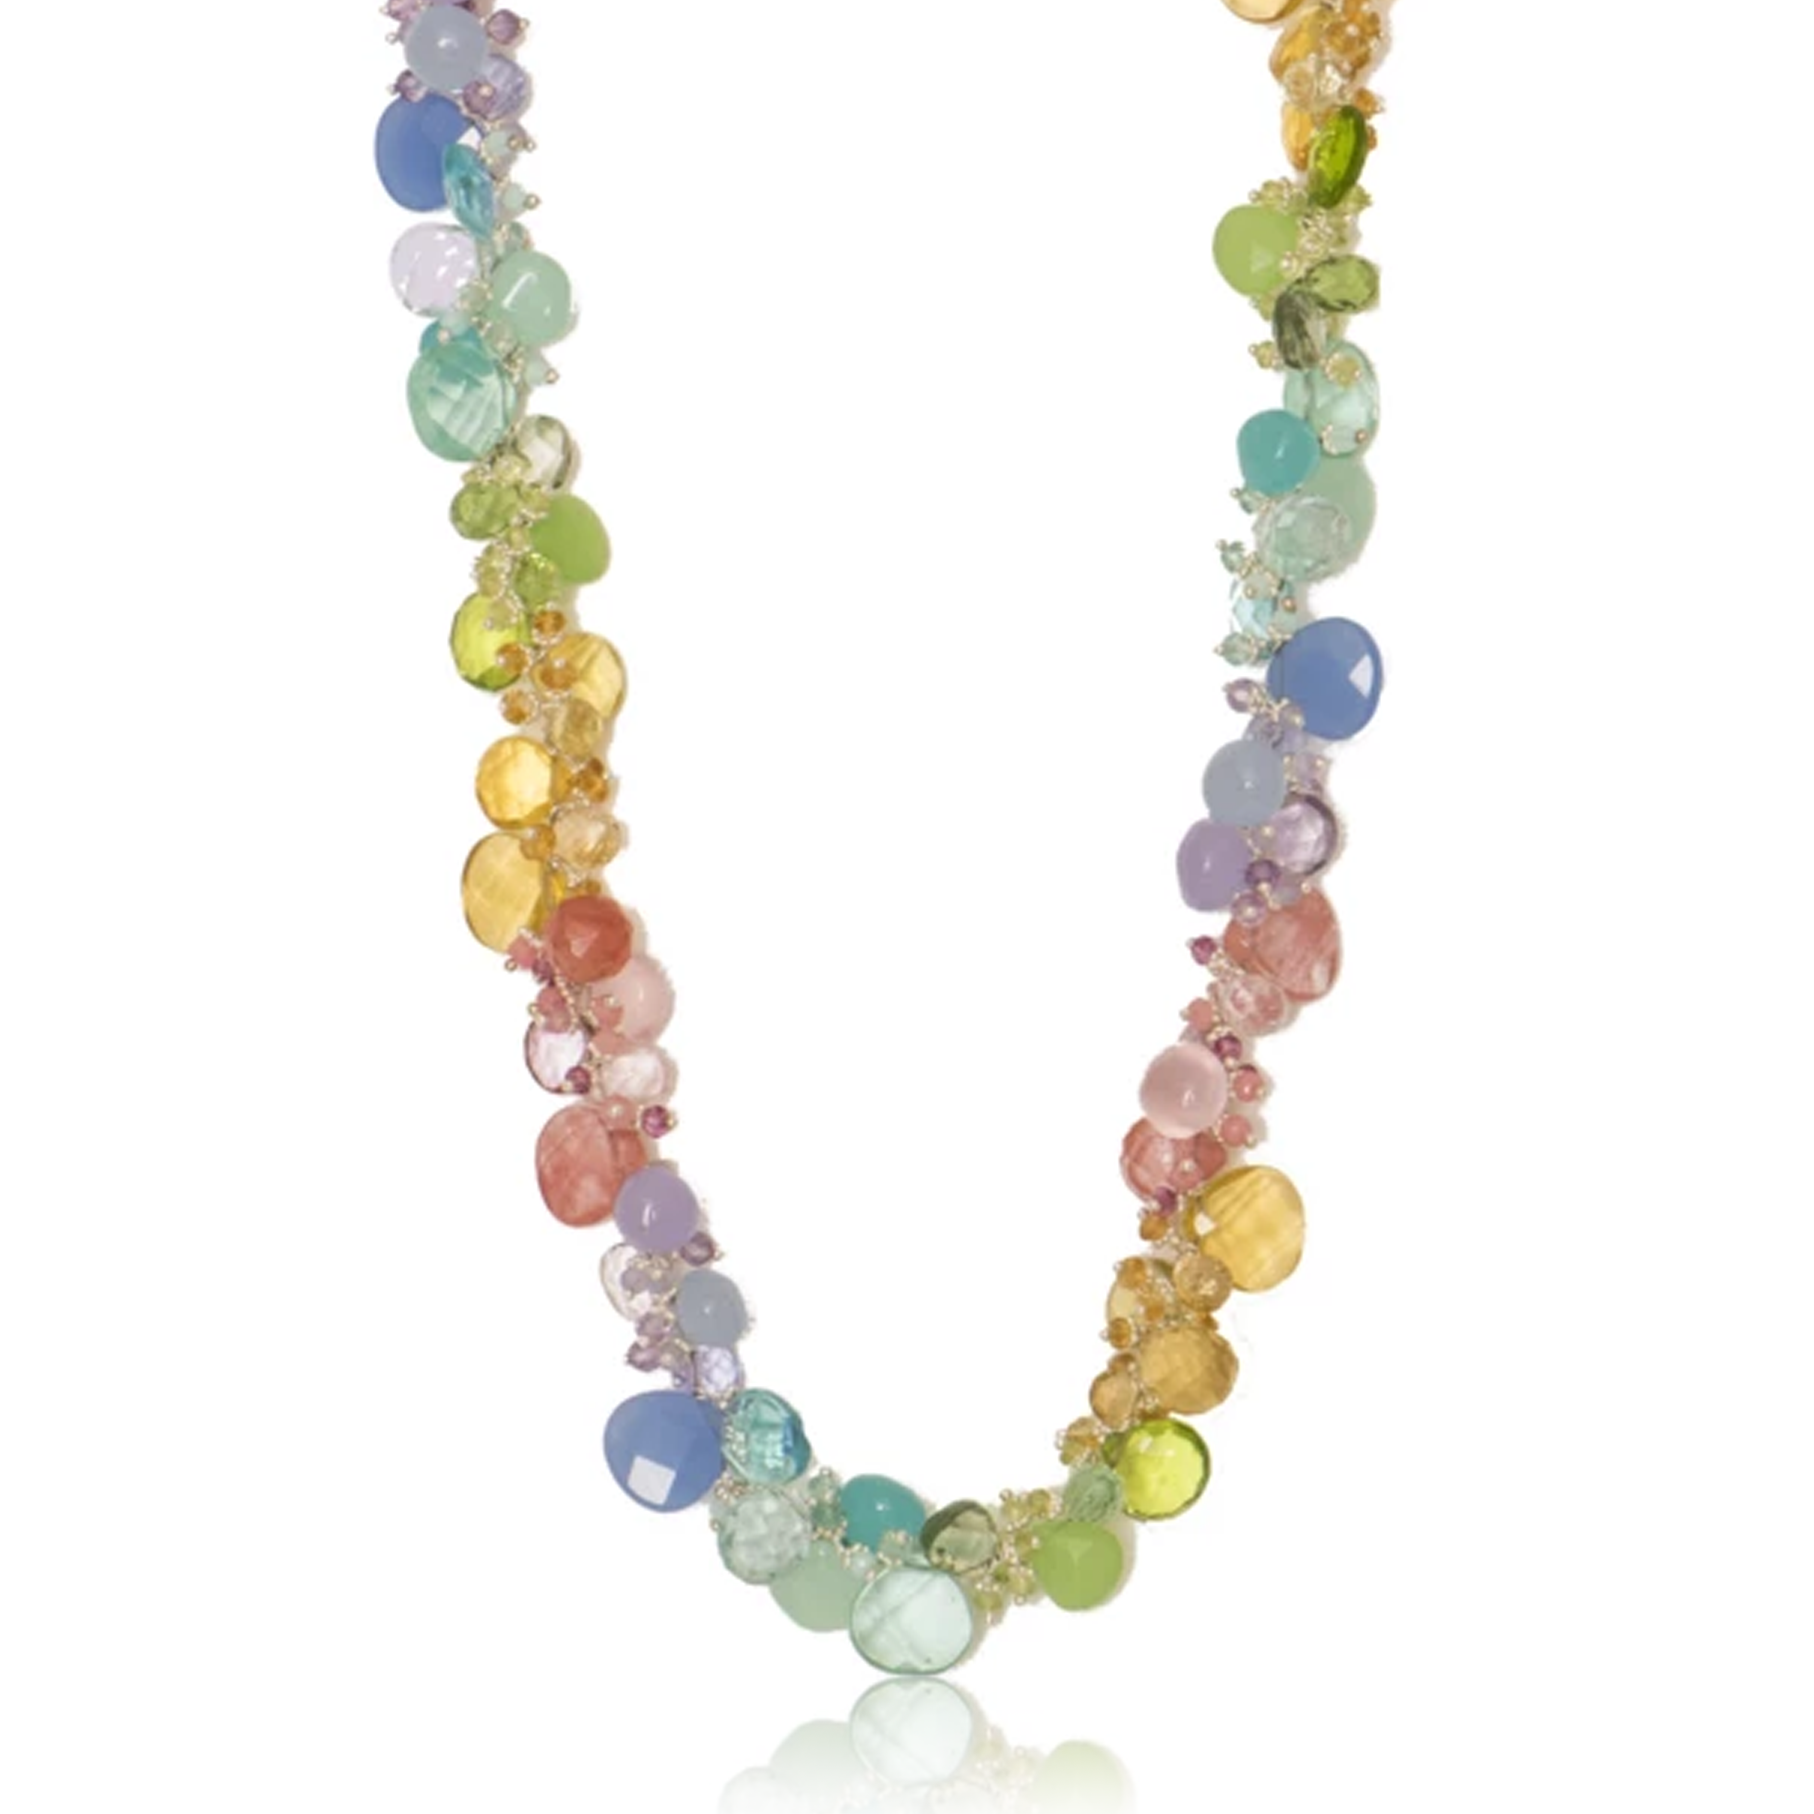 Pastel Classic Large Jellybean Necklace (Sterling Silver)